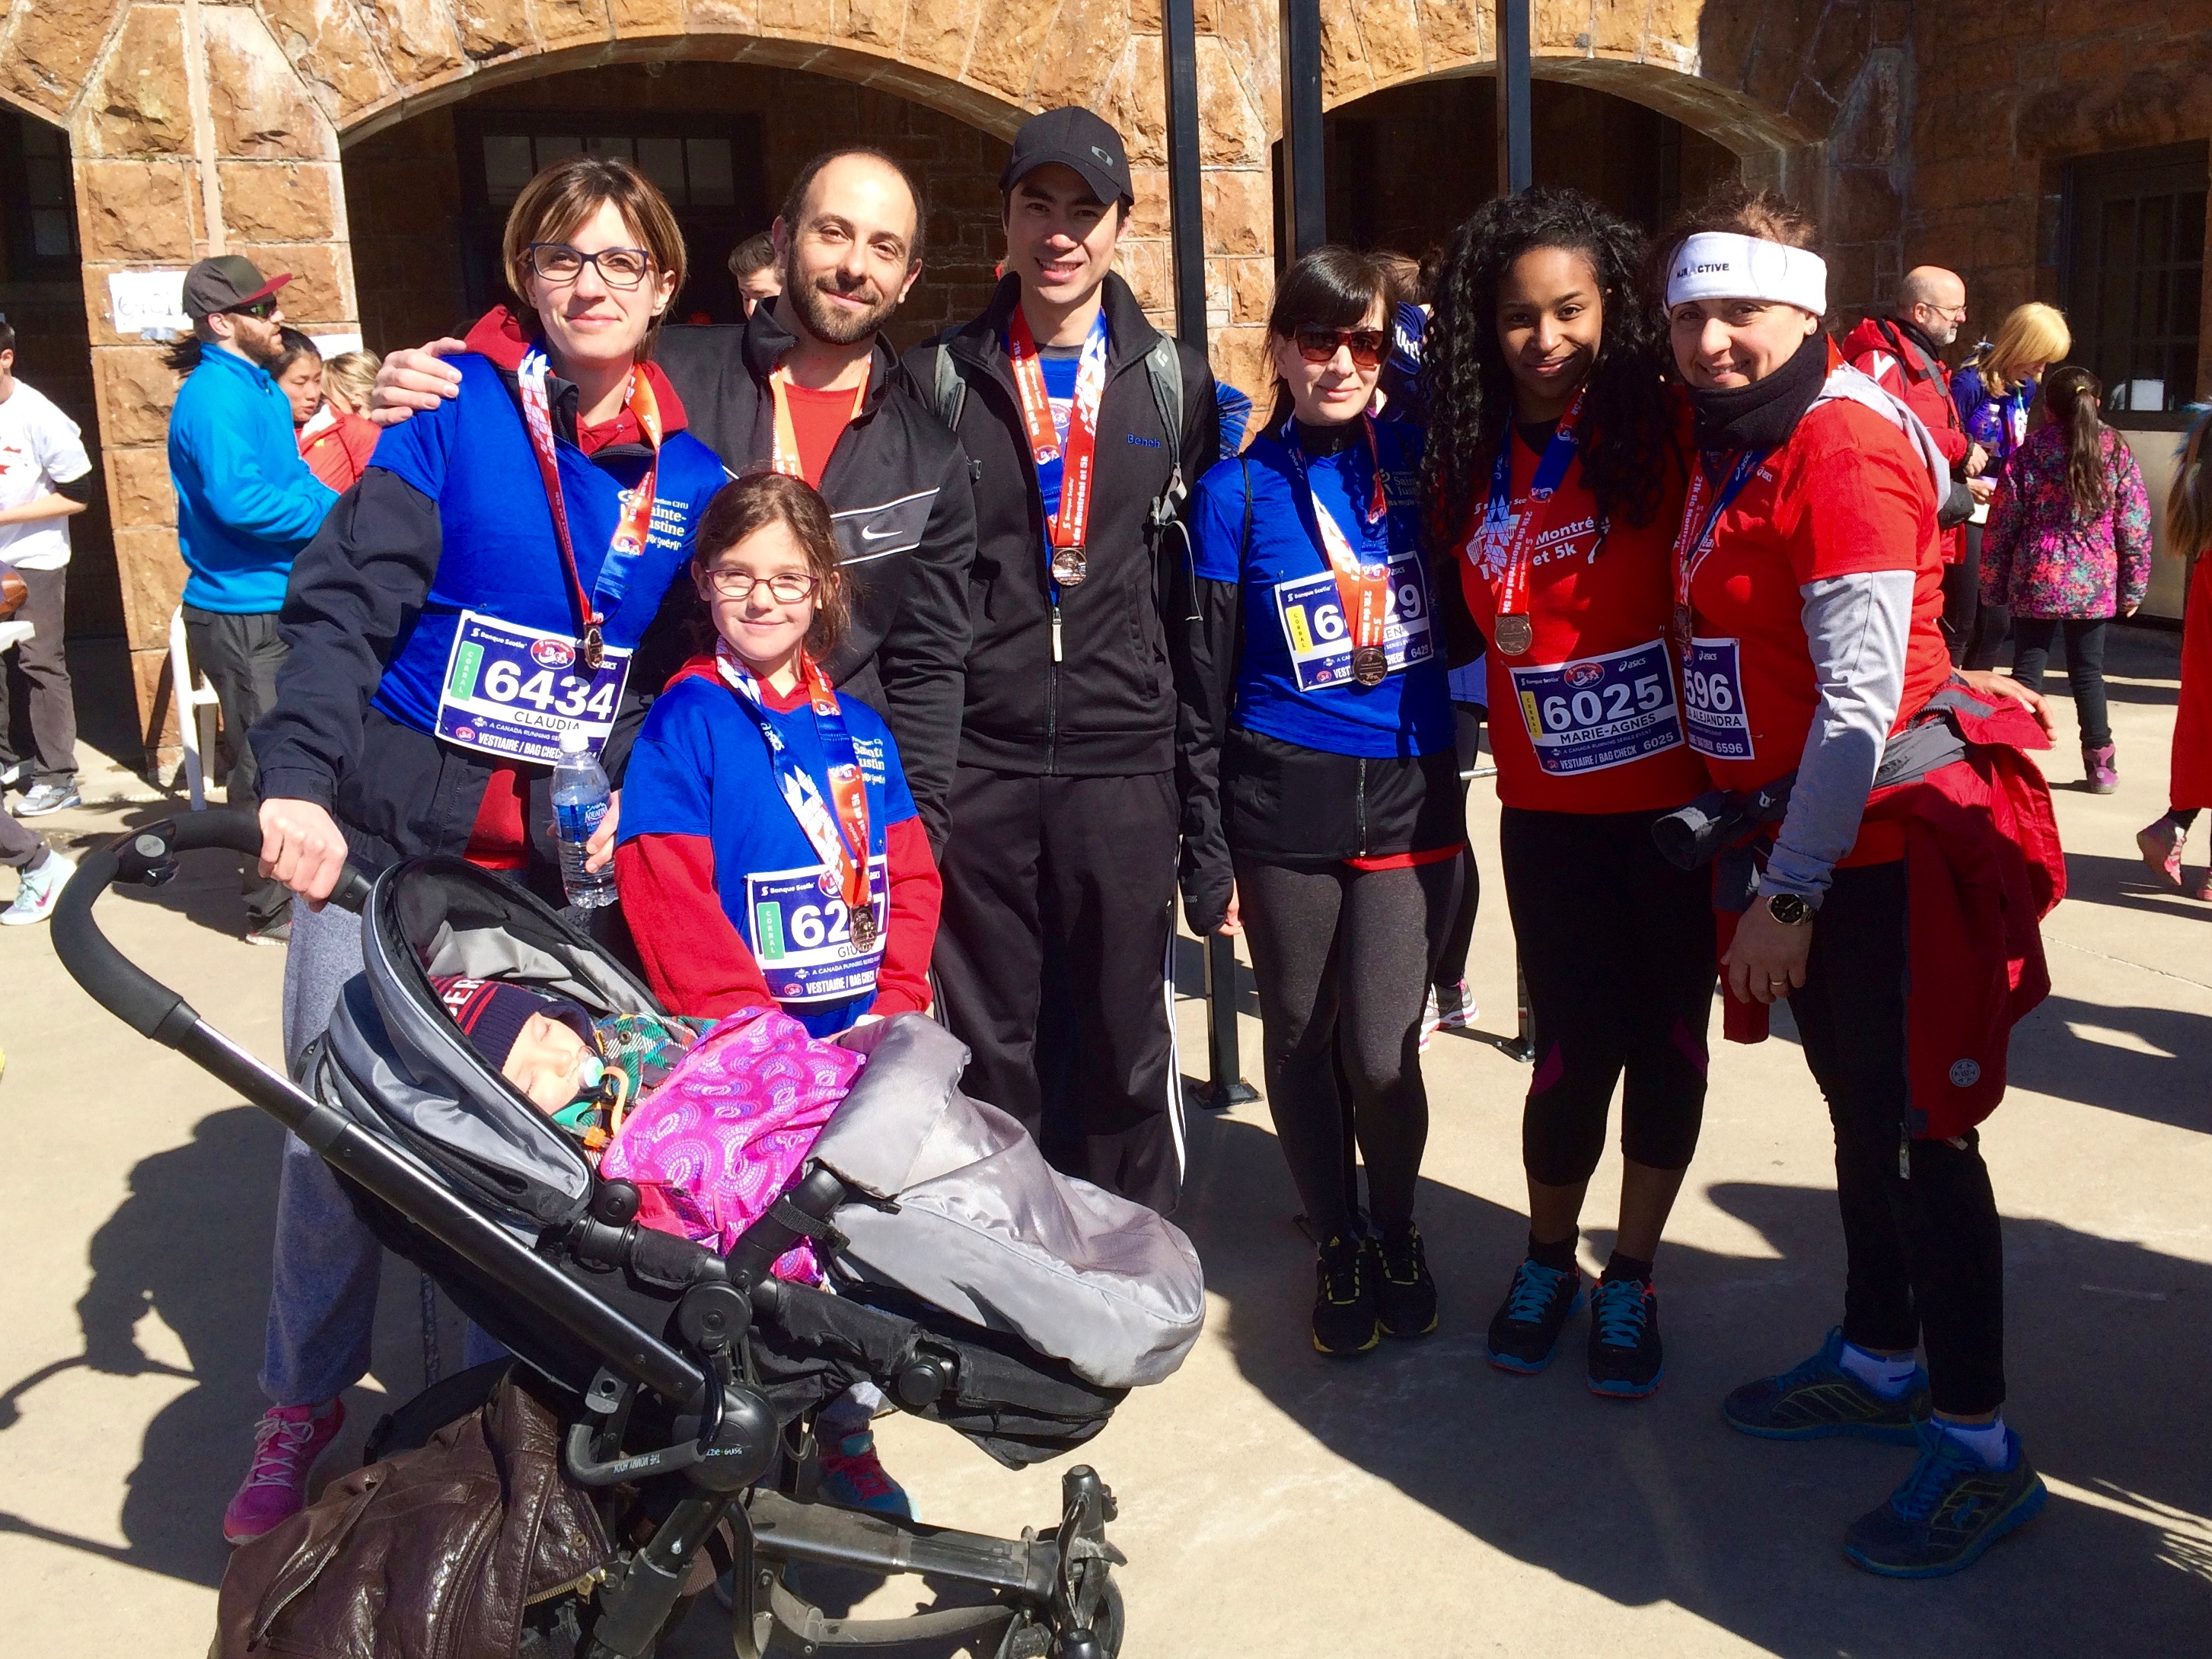 Running to support our research